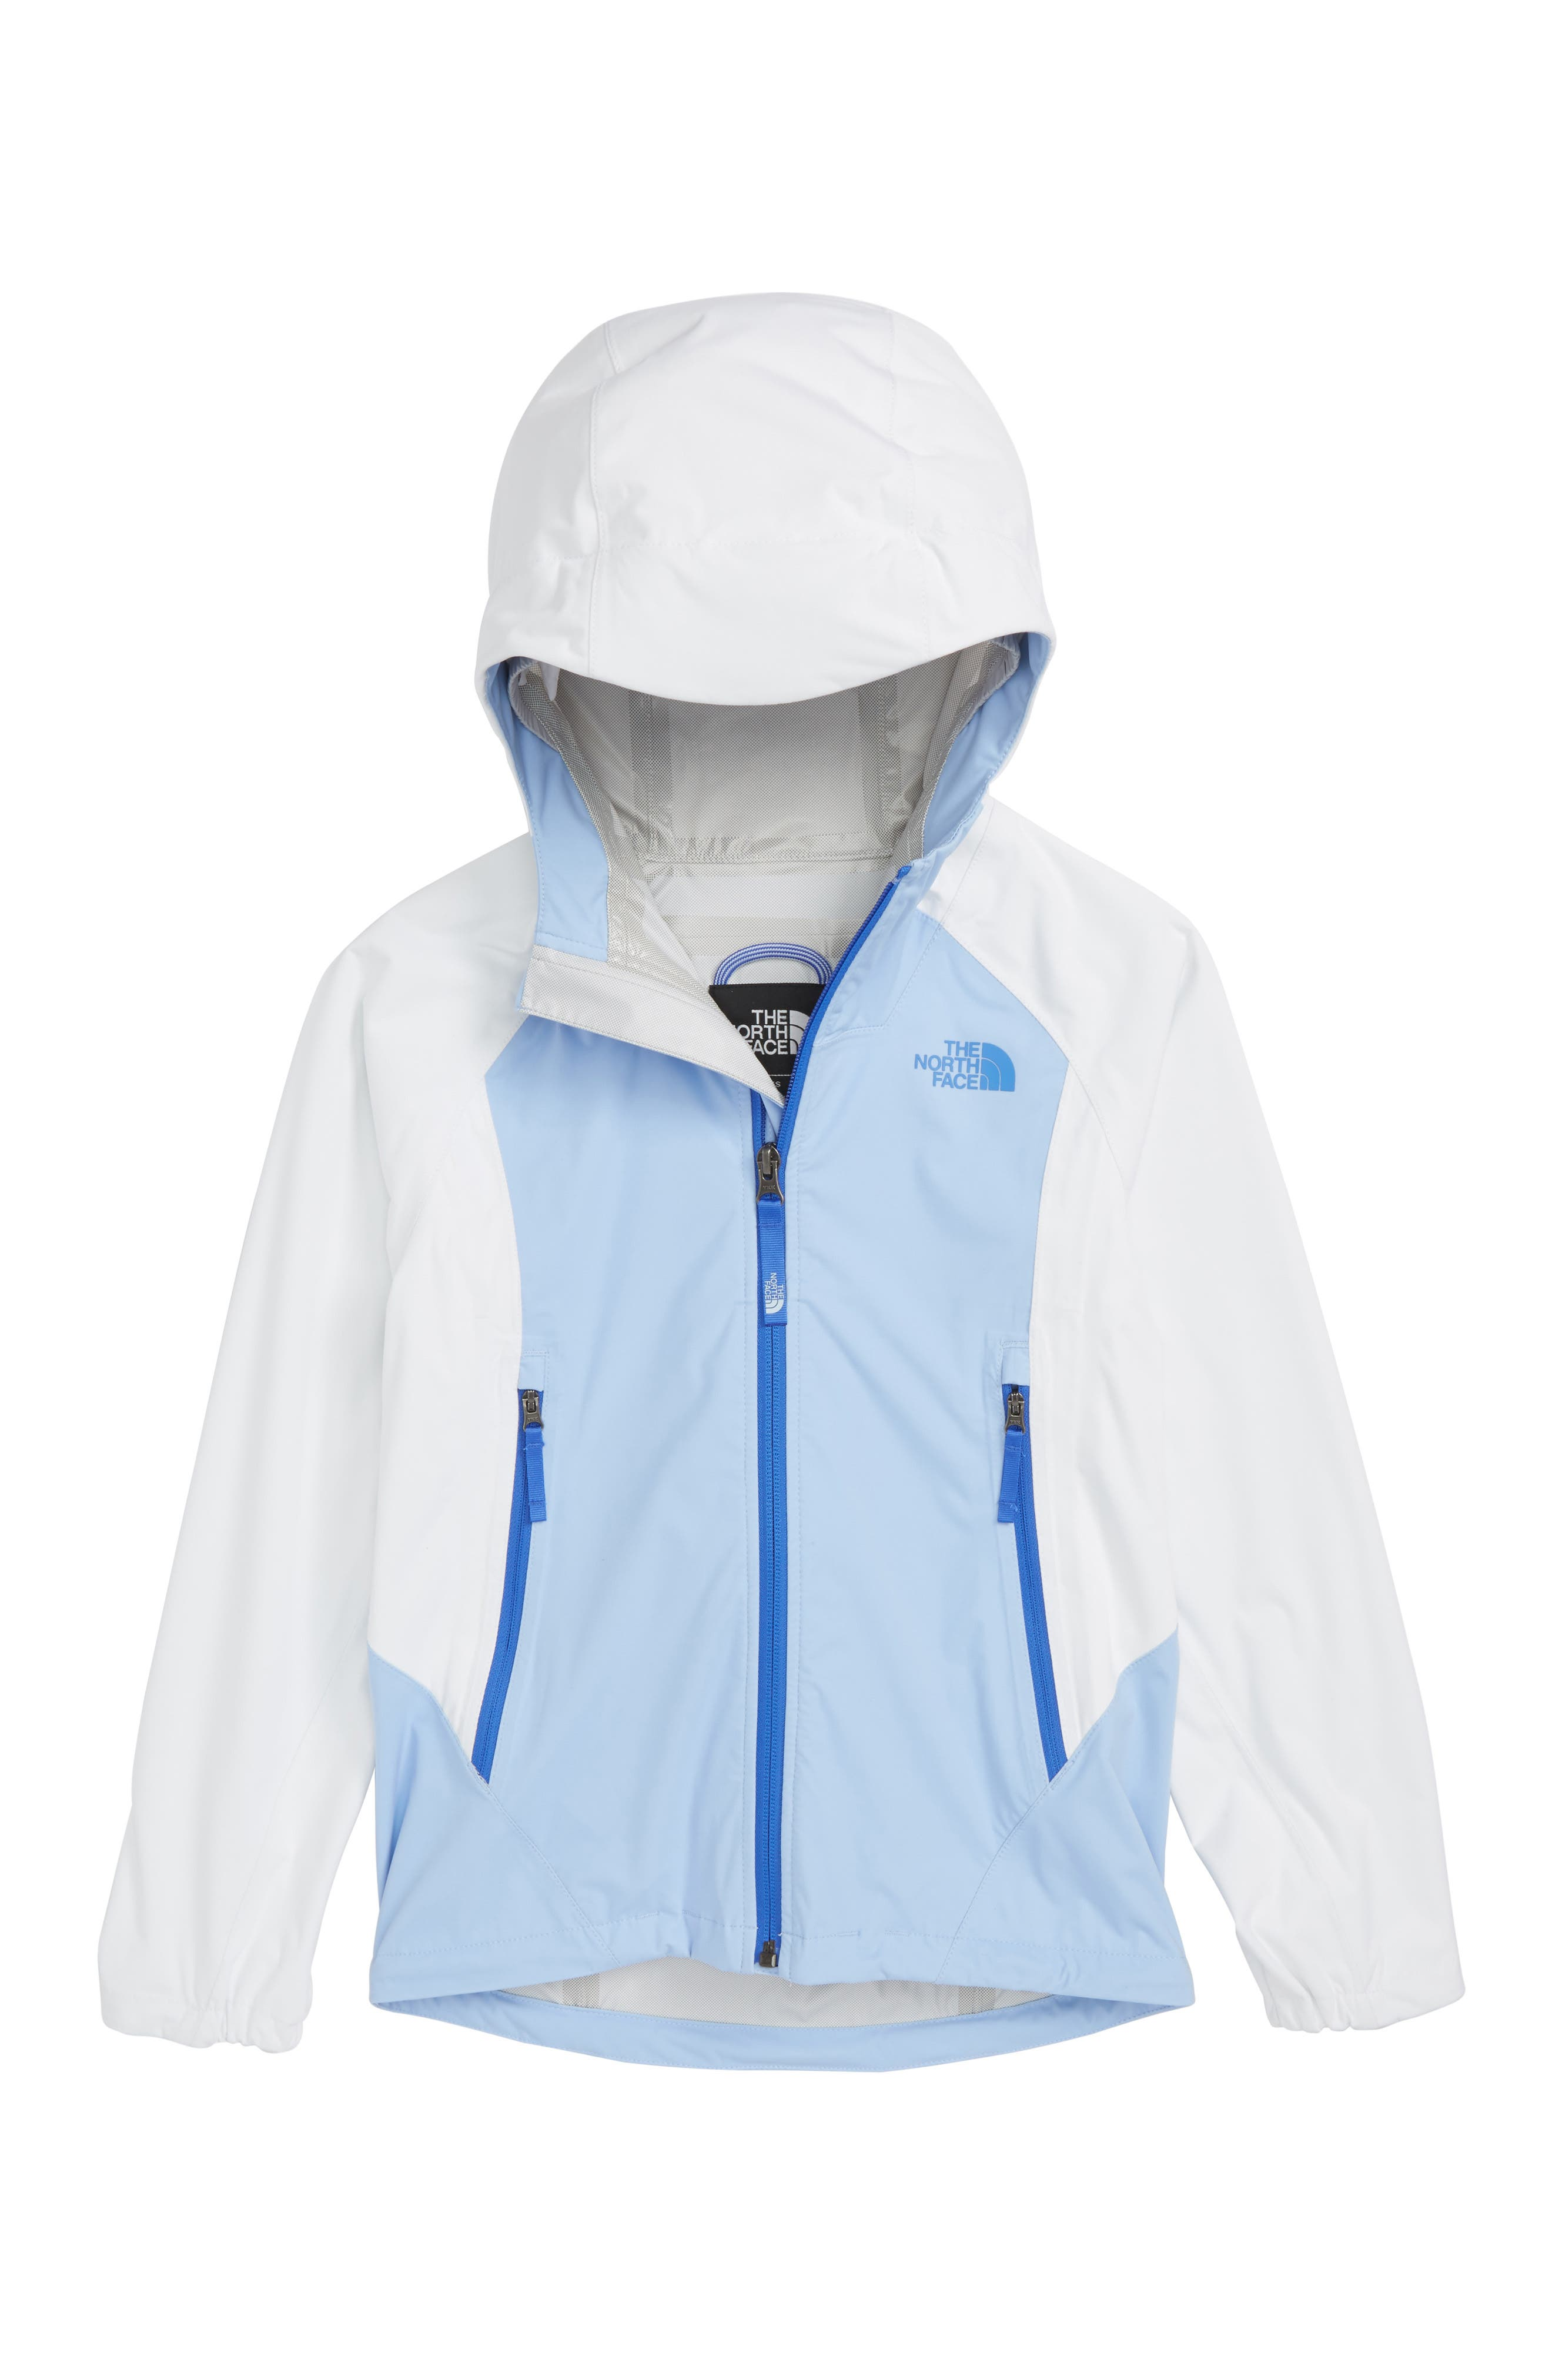 Allproof Stretch Hooded Rain Jacket,                             Main thumbnail 1, color,                             White